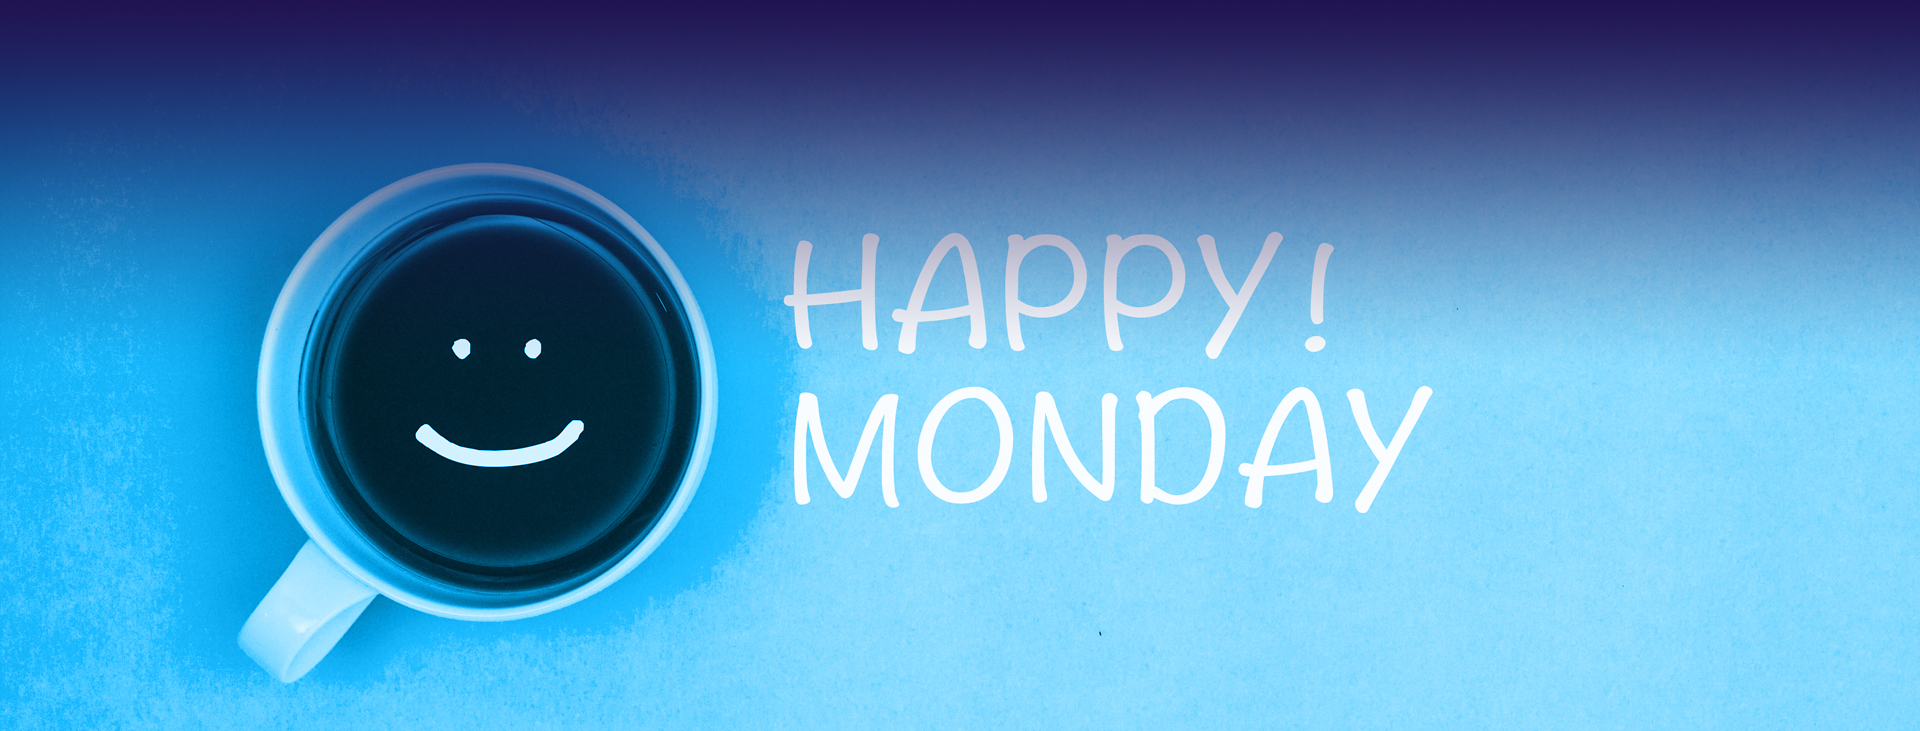 Blue Monday: Does your WordPress site need some tlc?